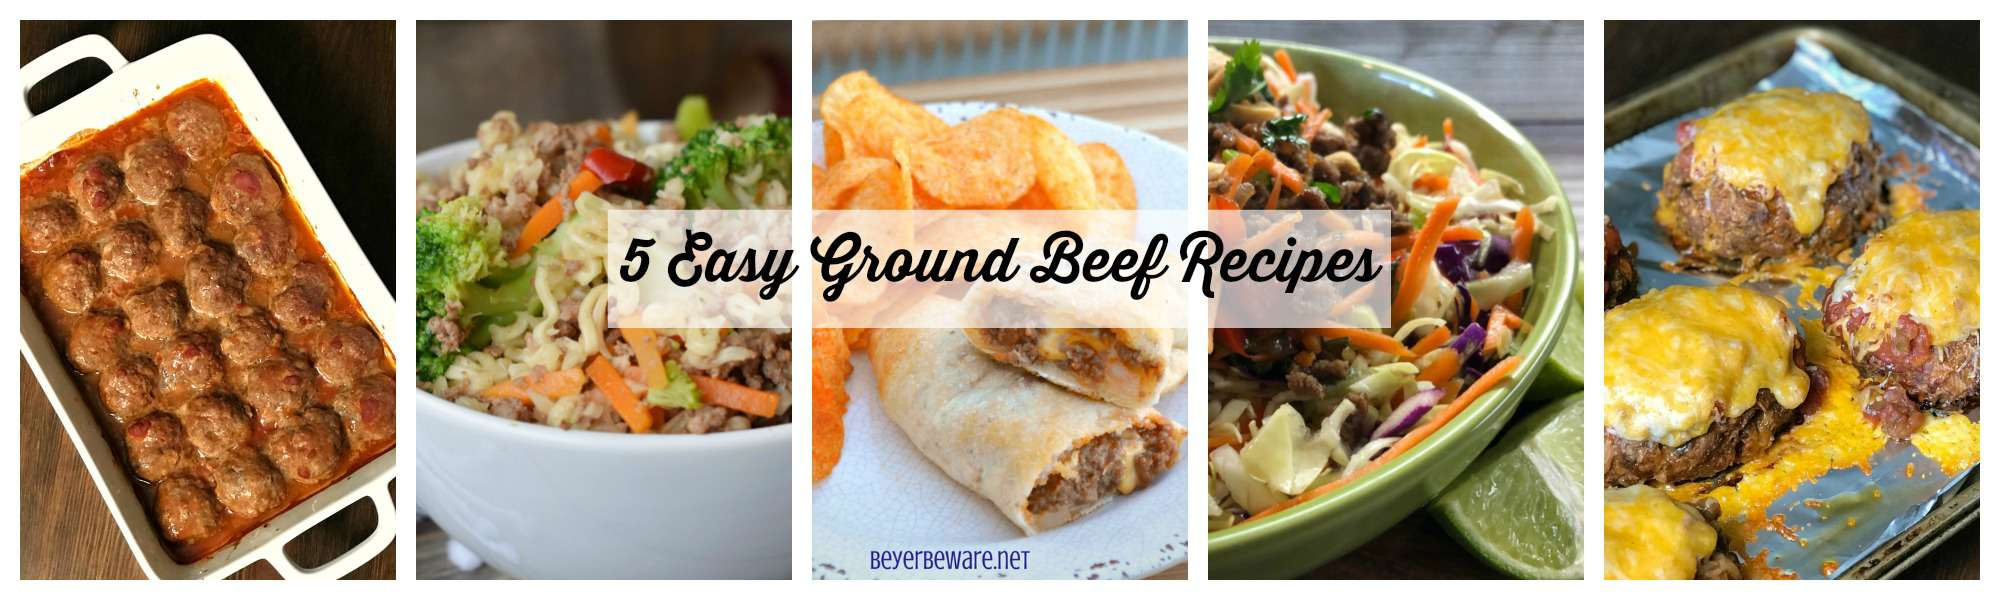 5 Easy Ground Beef Recipes